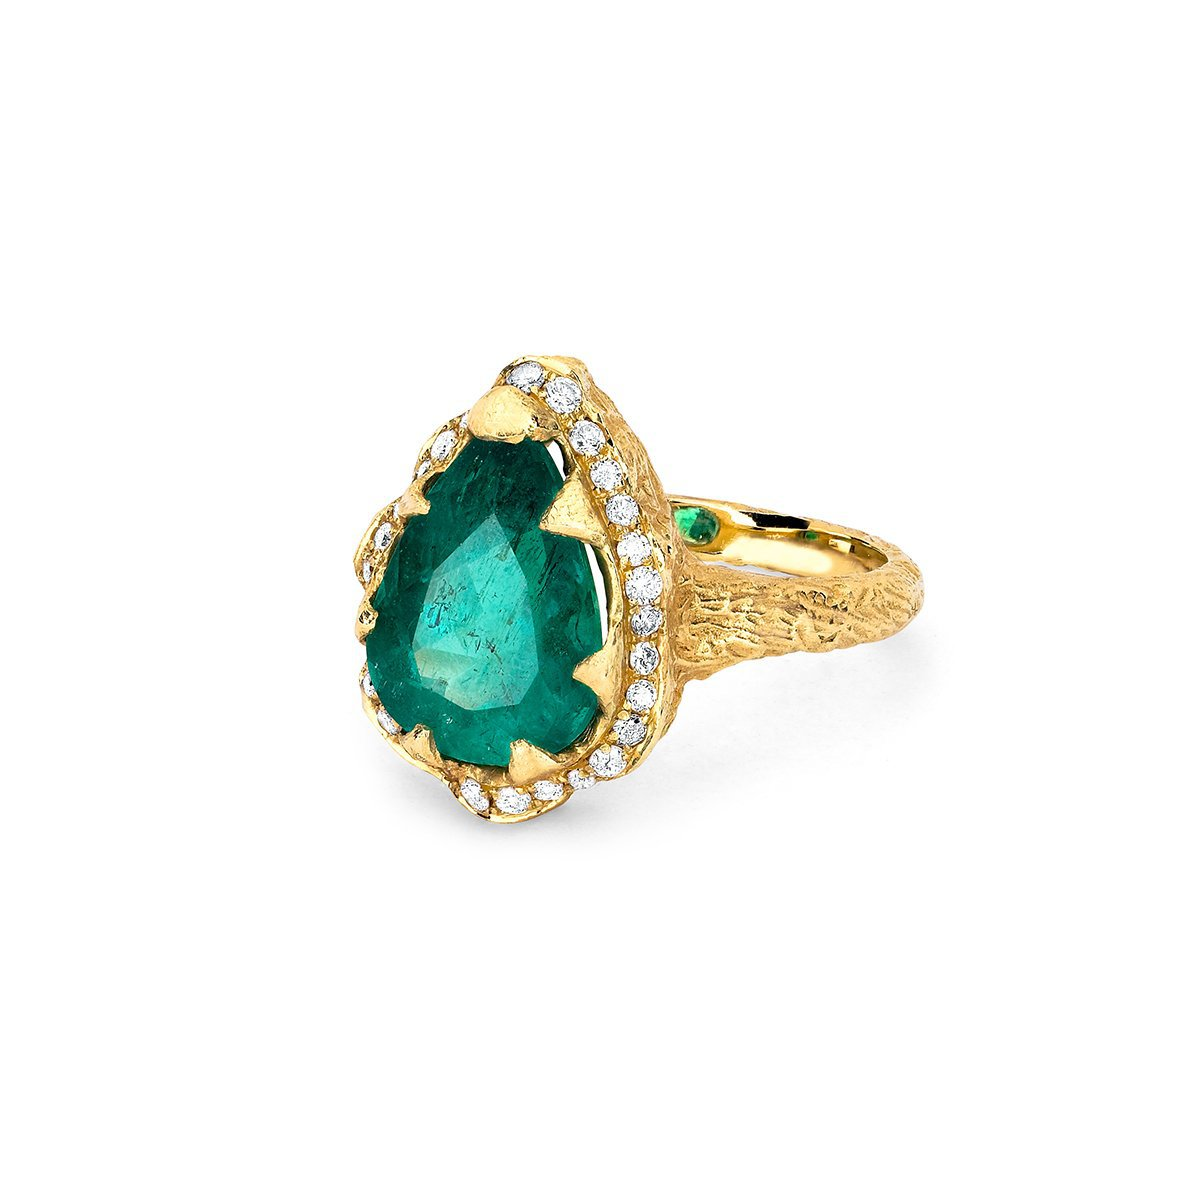 18k Premium Water Drop Colombian Emerald Queen Ring with Full Pavé Diamond Halo